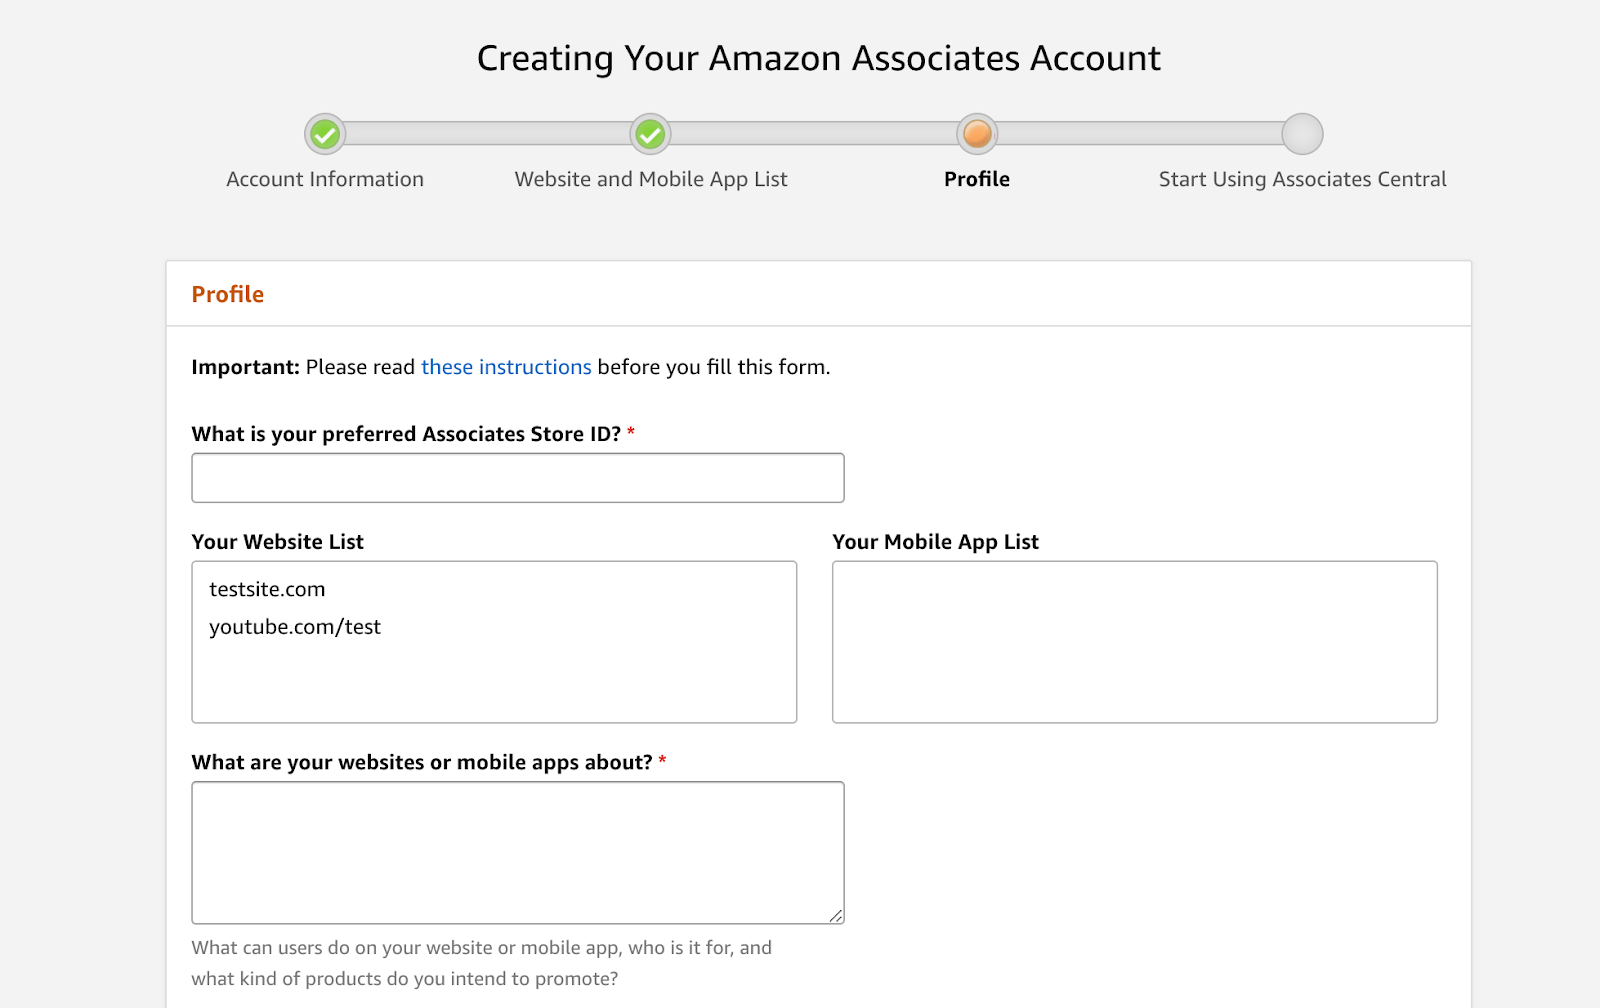 Amazon affiliates program: Profile information